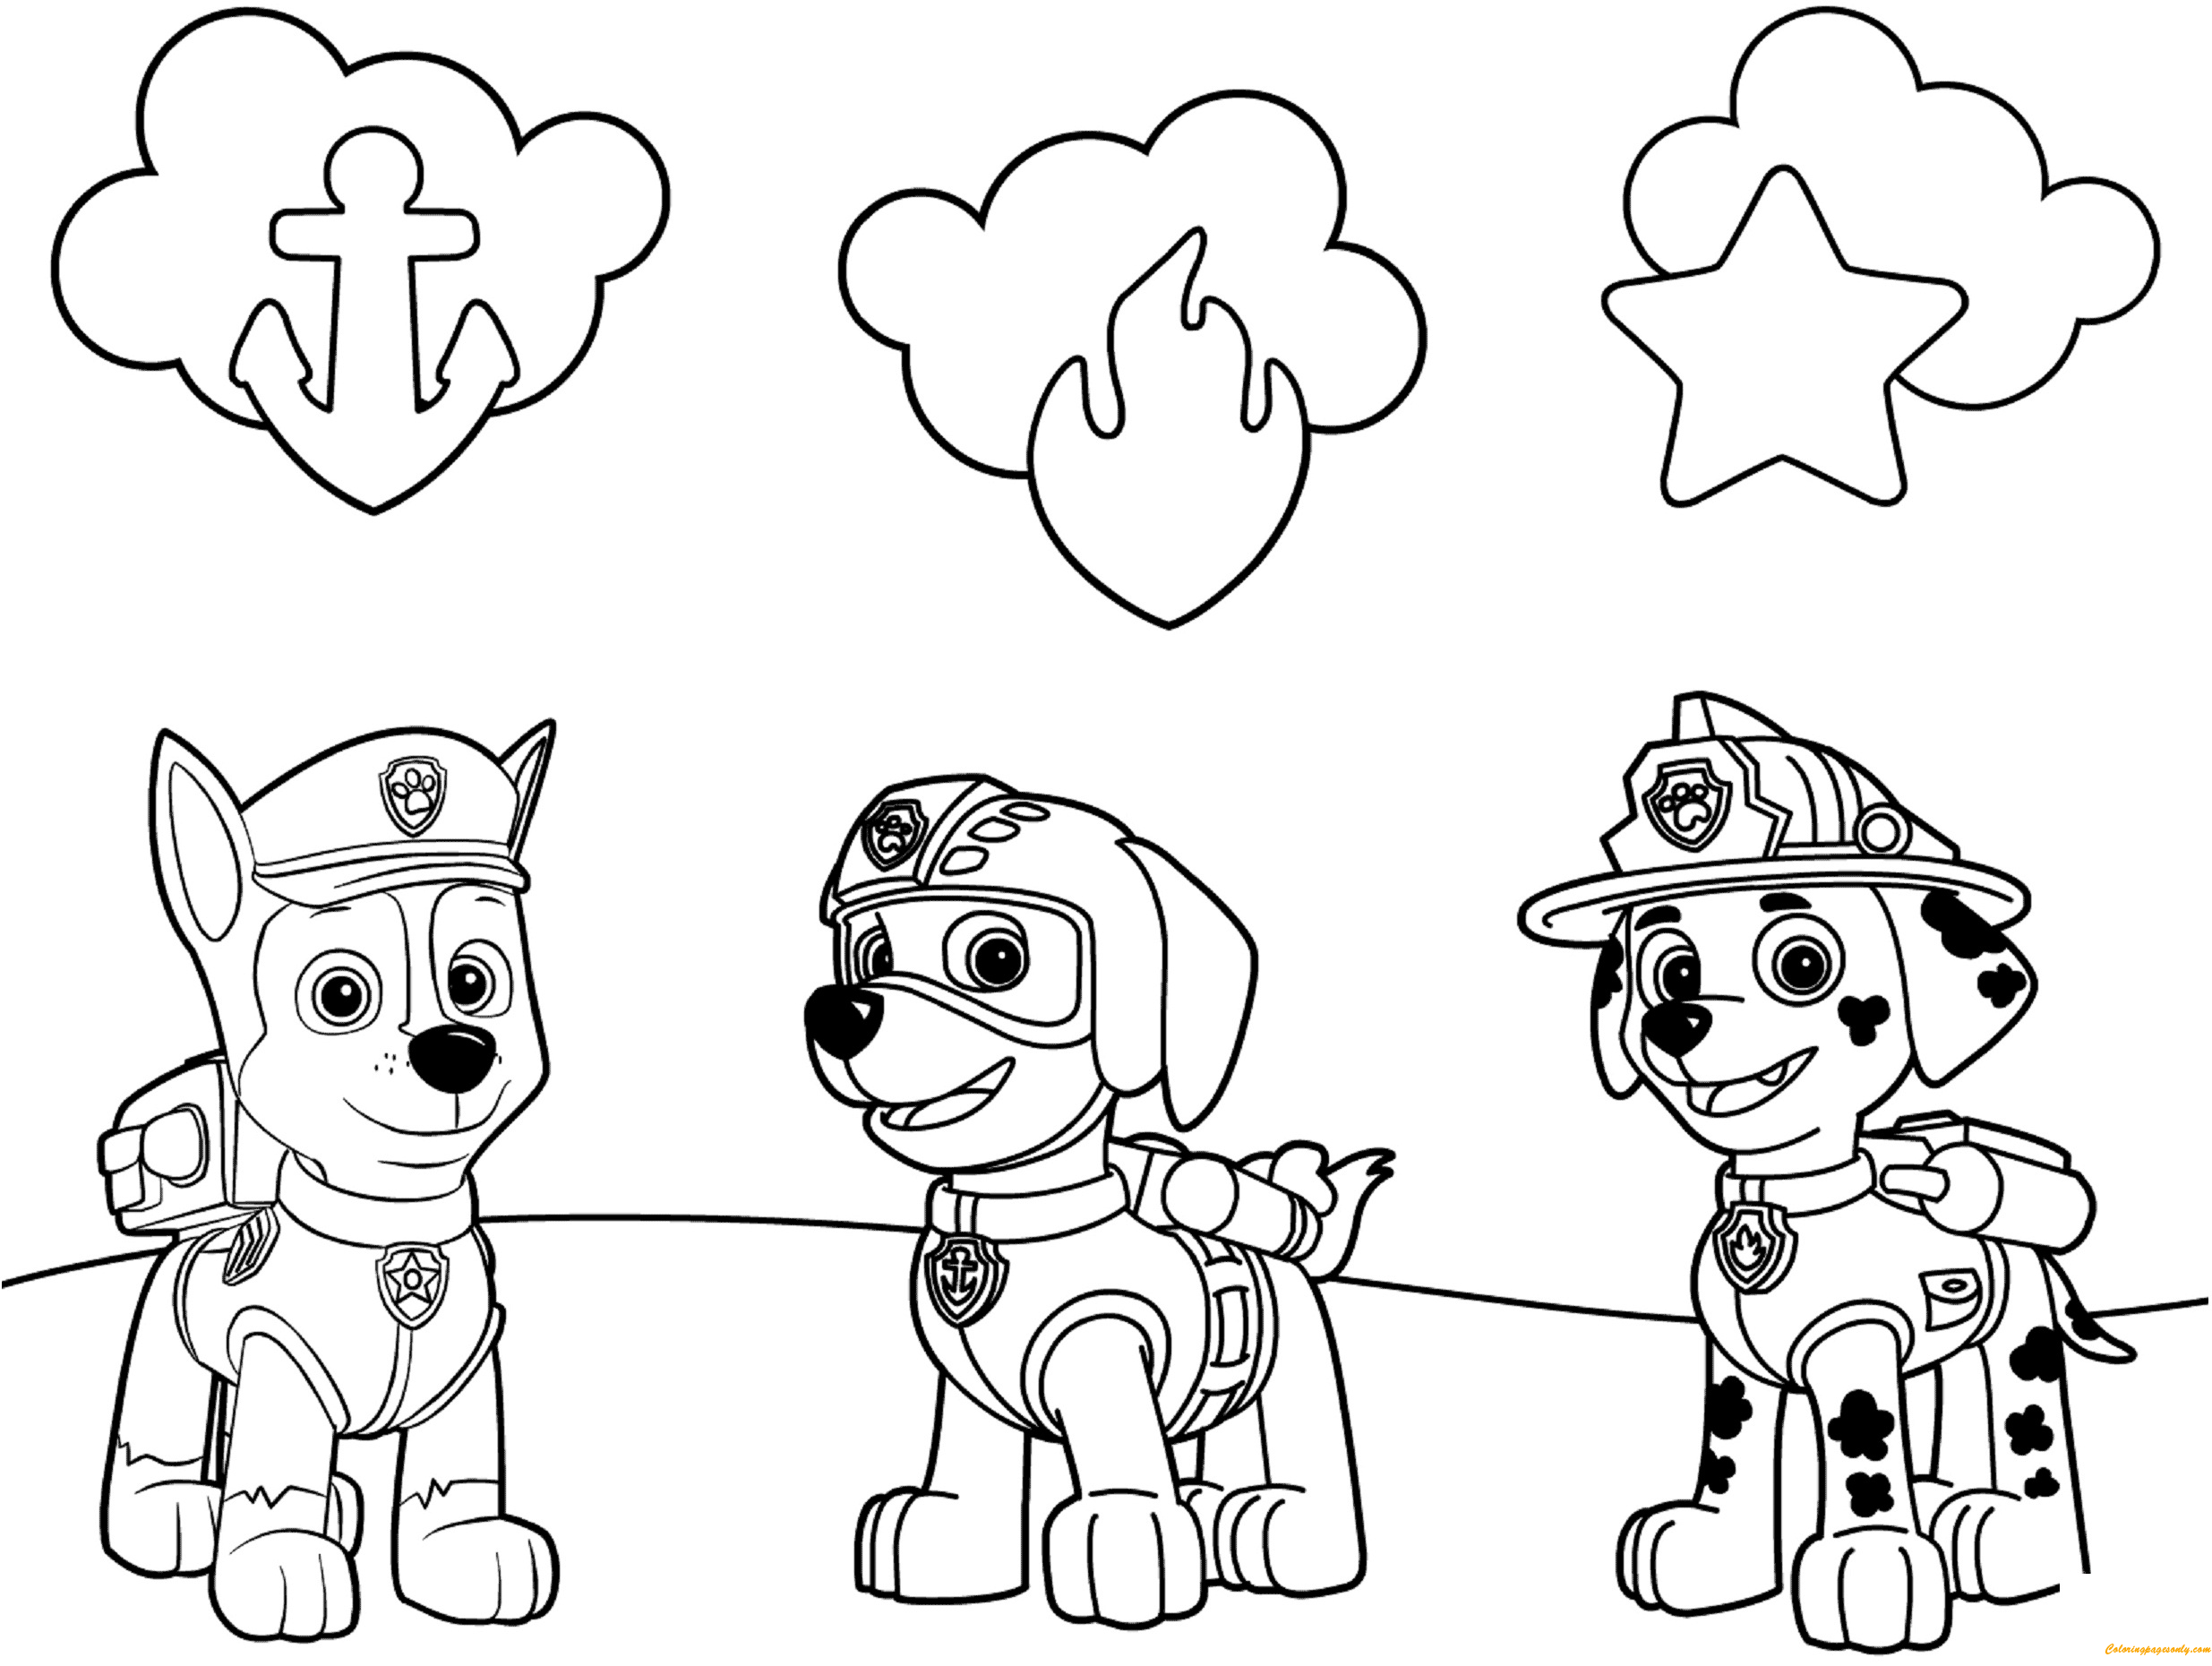 Paw Patrol Coloring Pages Aspca : Paw patrol badges coloring page free pages online